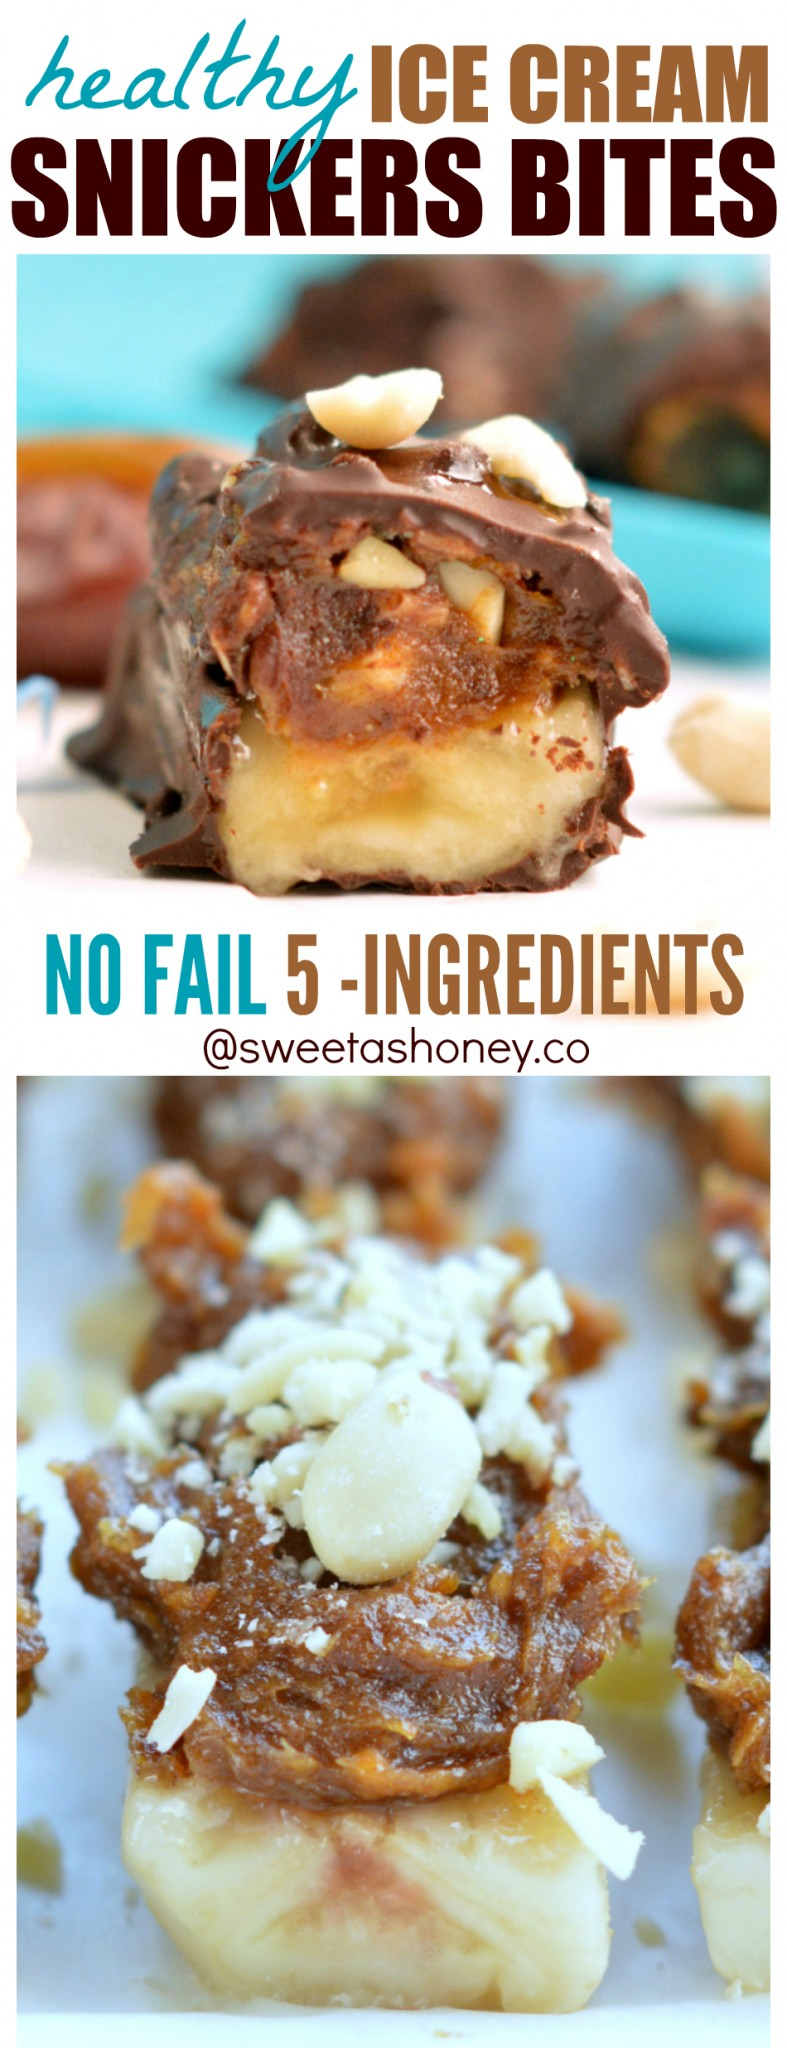 snickers candy bars healthy frozen ice cream